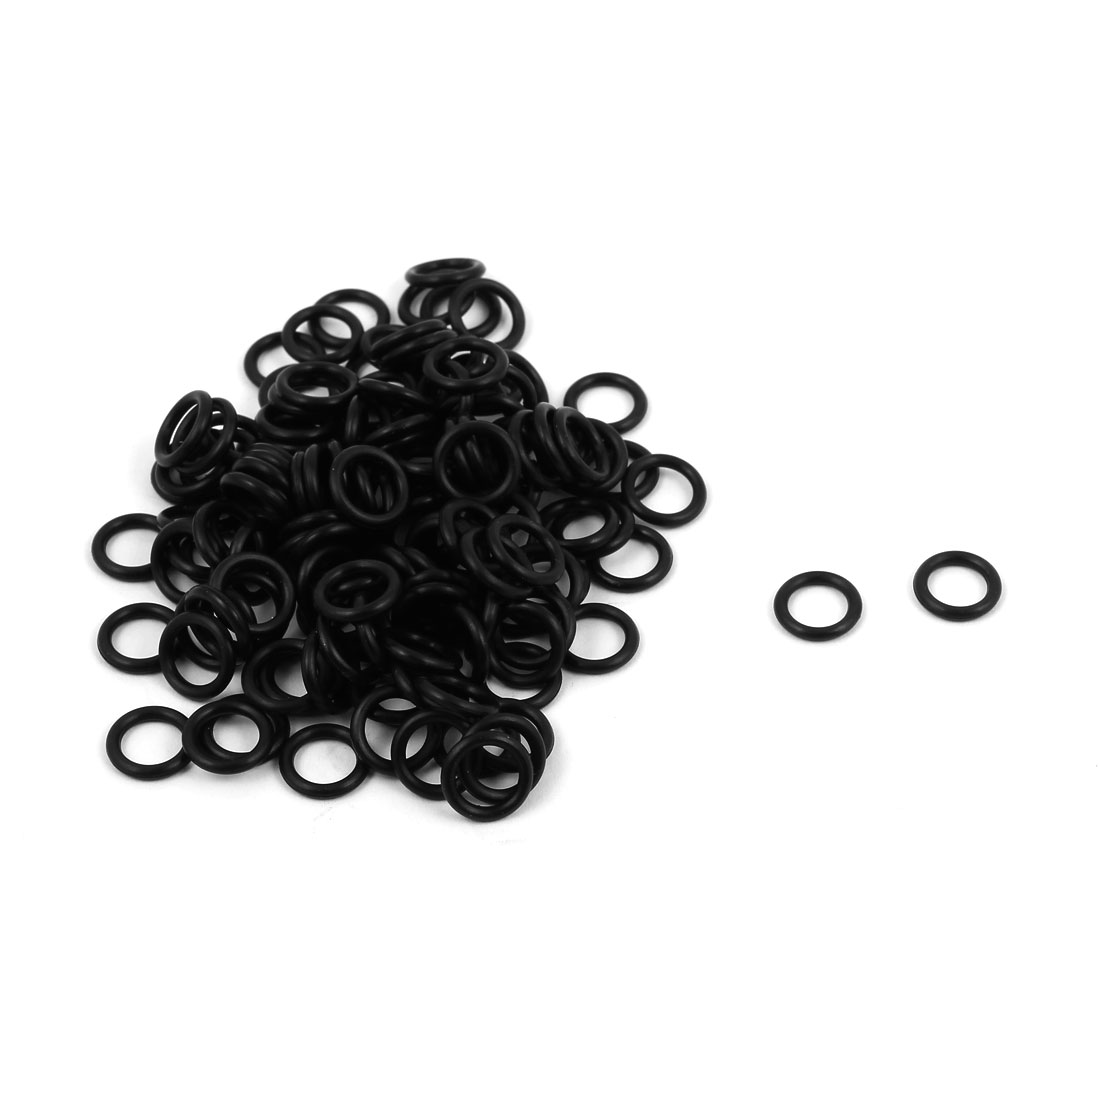 100Pcs 5mm Inner Dia Nitrile Rubber O-rings Heat Resistant Sealing Grommets